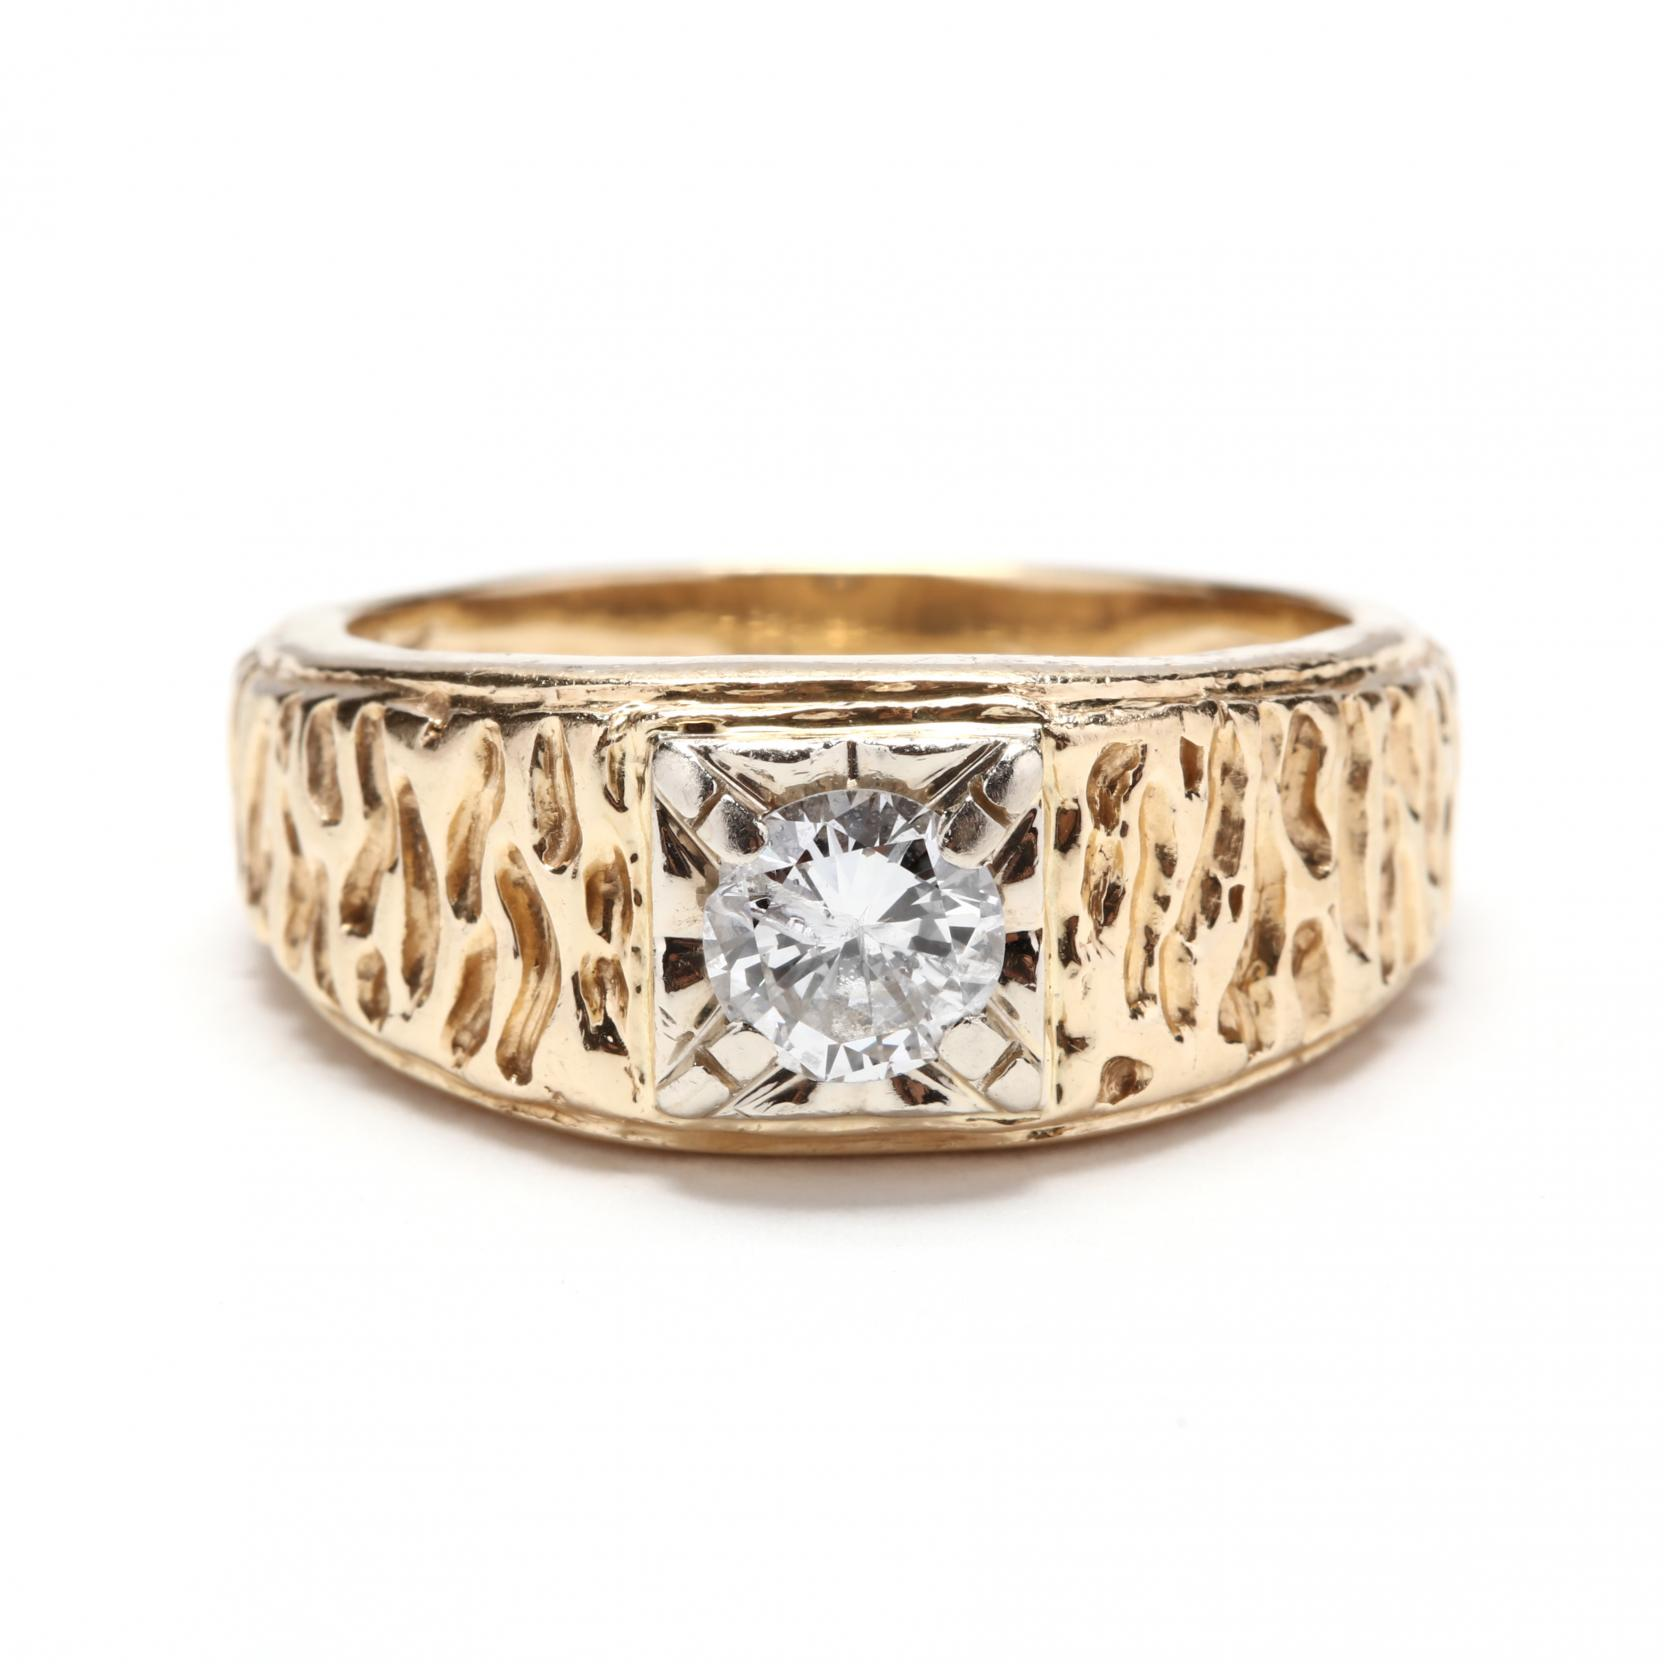 gent-s-14kt-gold-and-diamond-ring